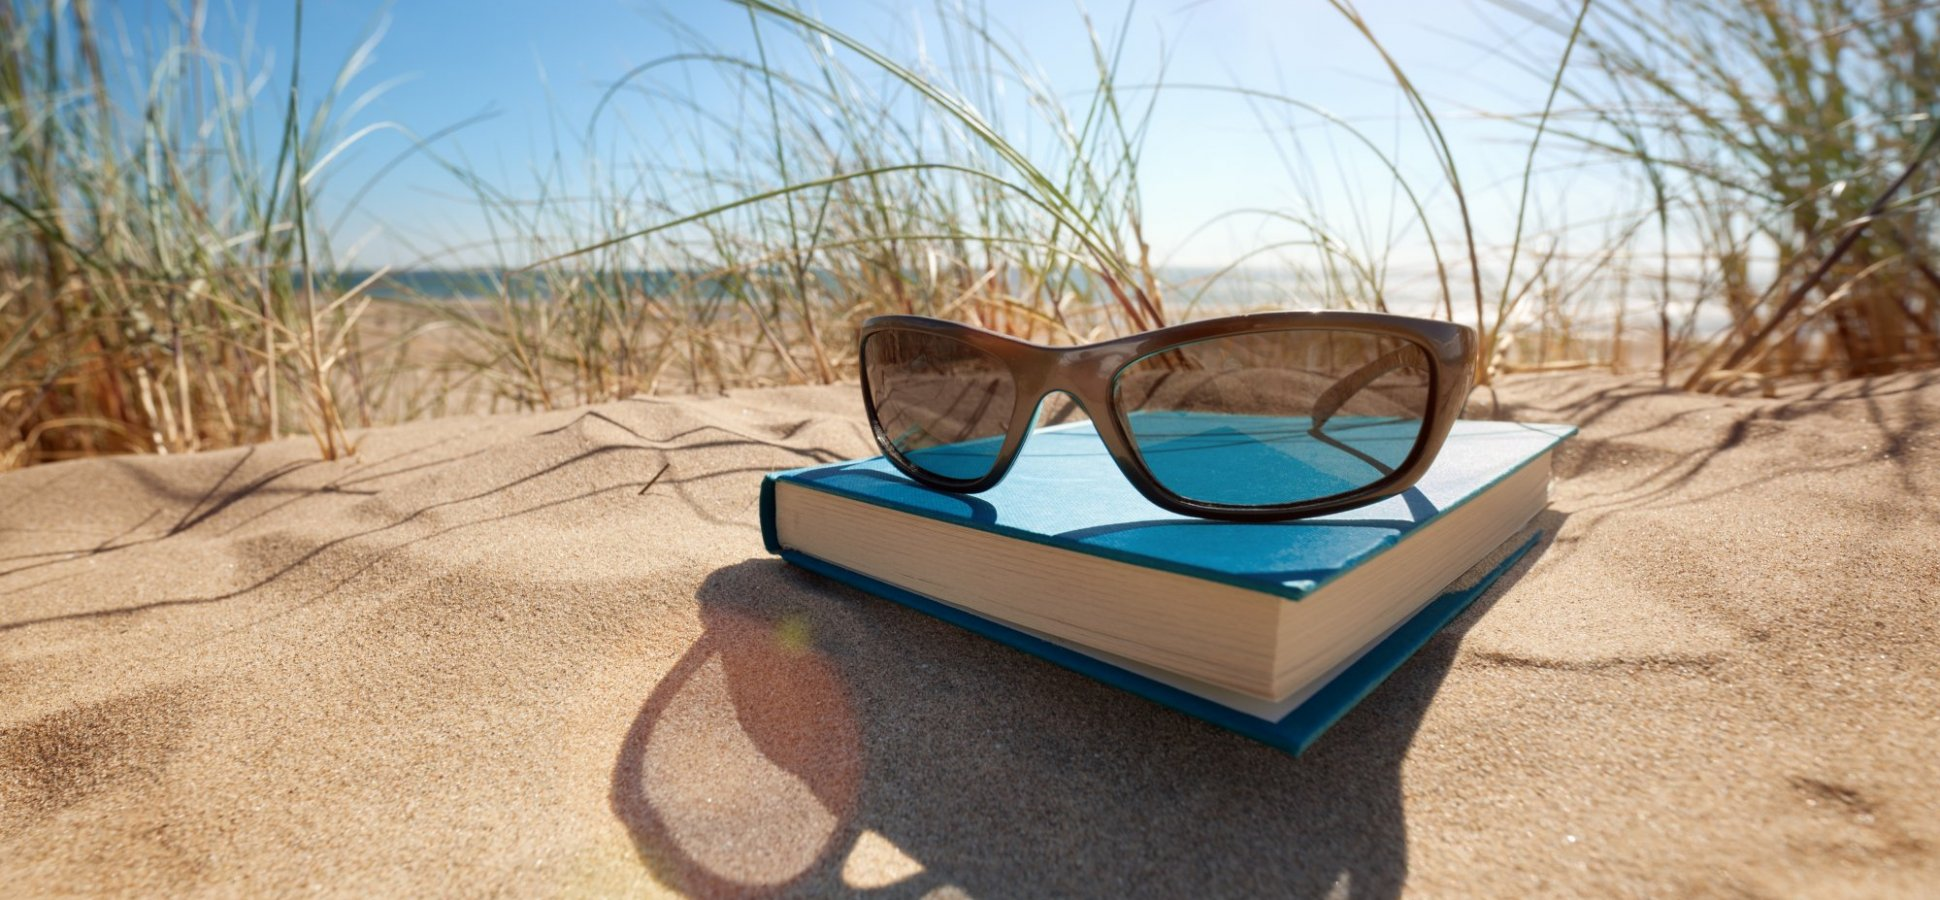 What to Read This Summer: 7 Books That Inspire Change, Growth and Development